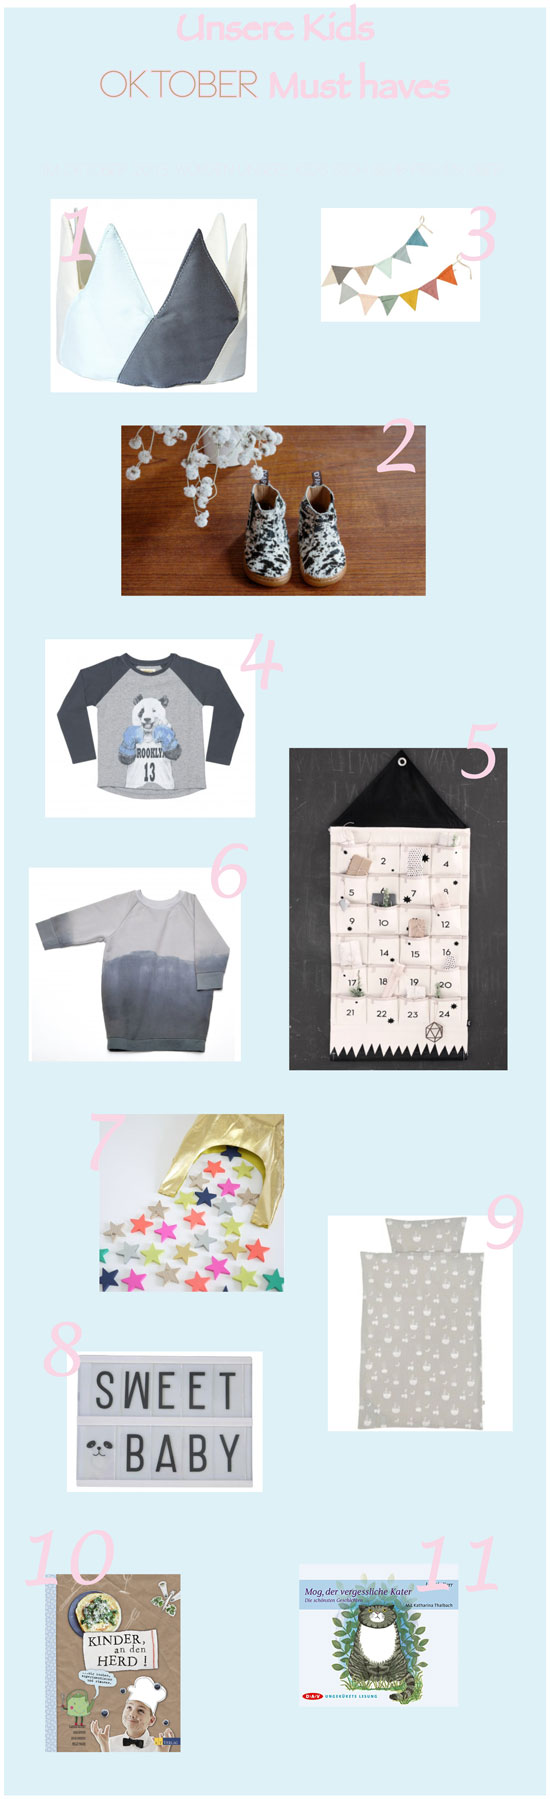 Oktober-Kids-Must-haves-2015